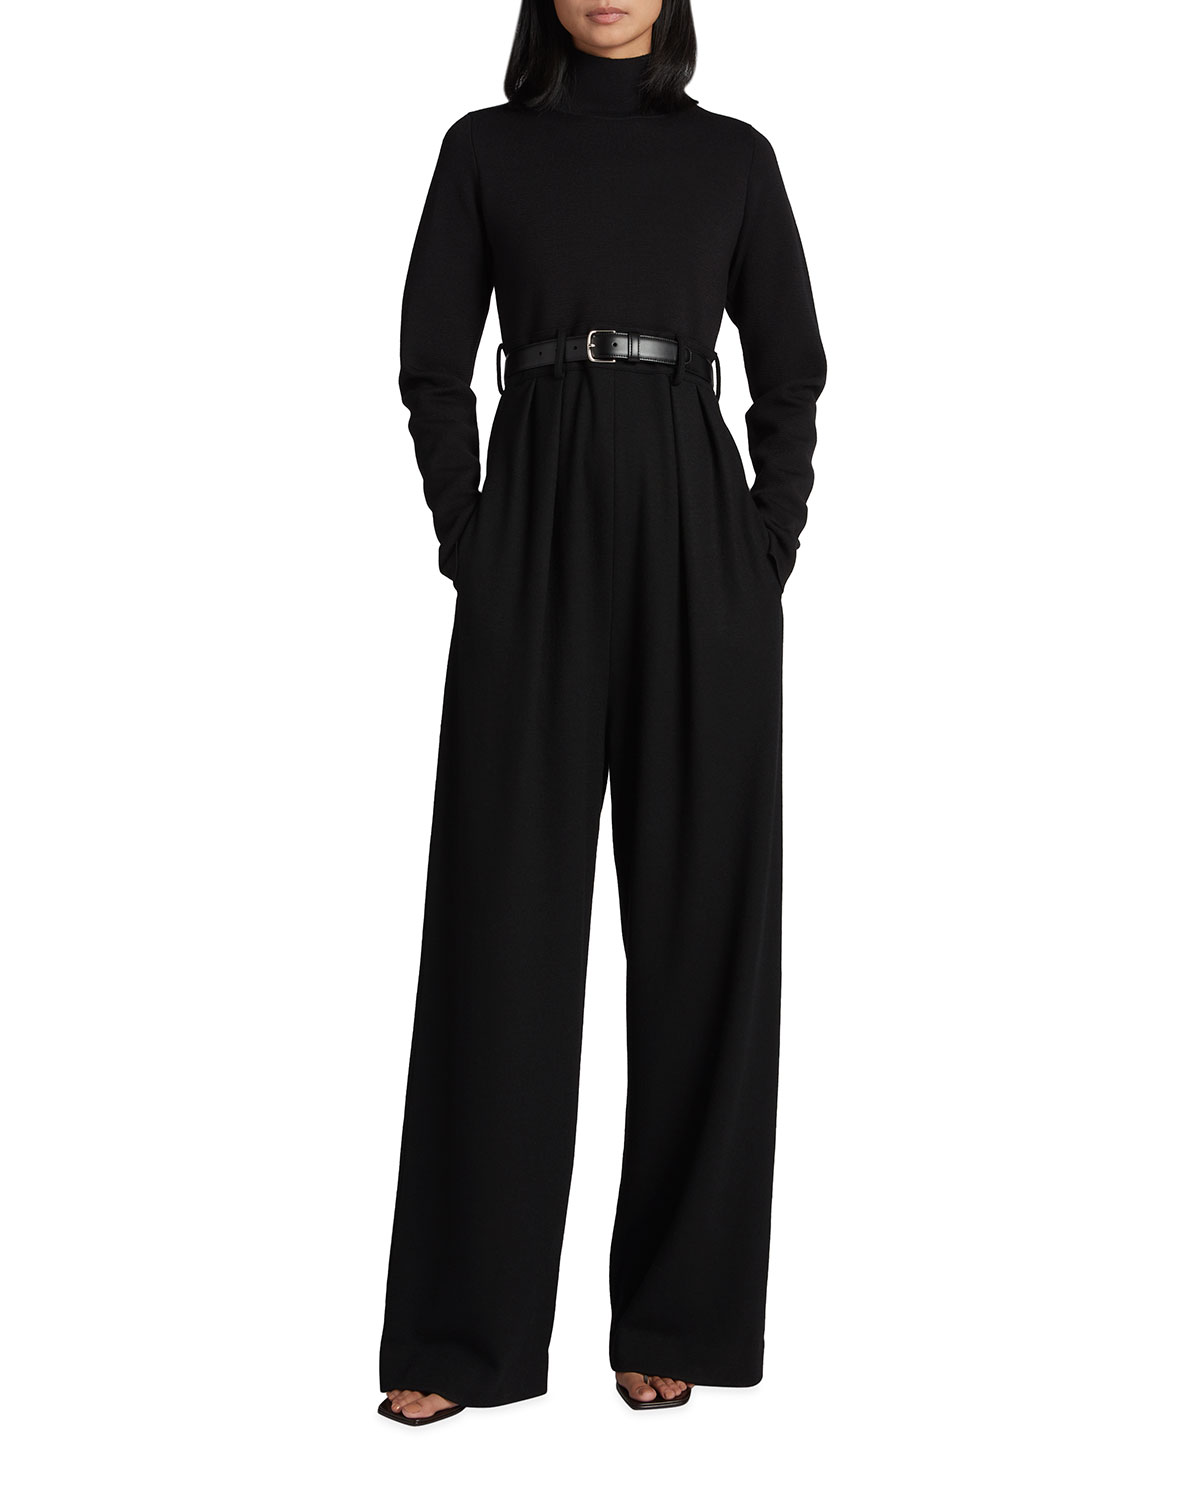 The Row Wools CELESTE SOLID WOOL KNIT LONG-SLEEVE JUMPSUIT